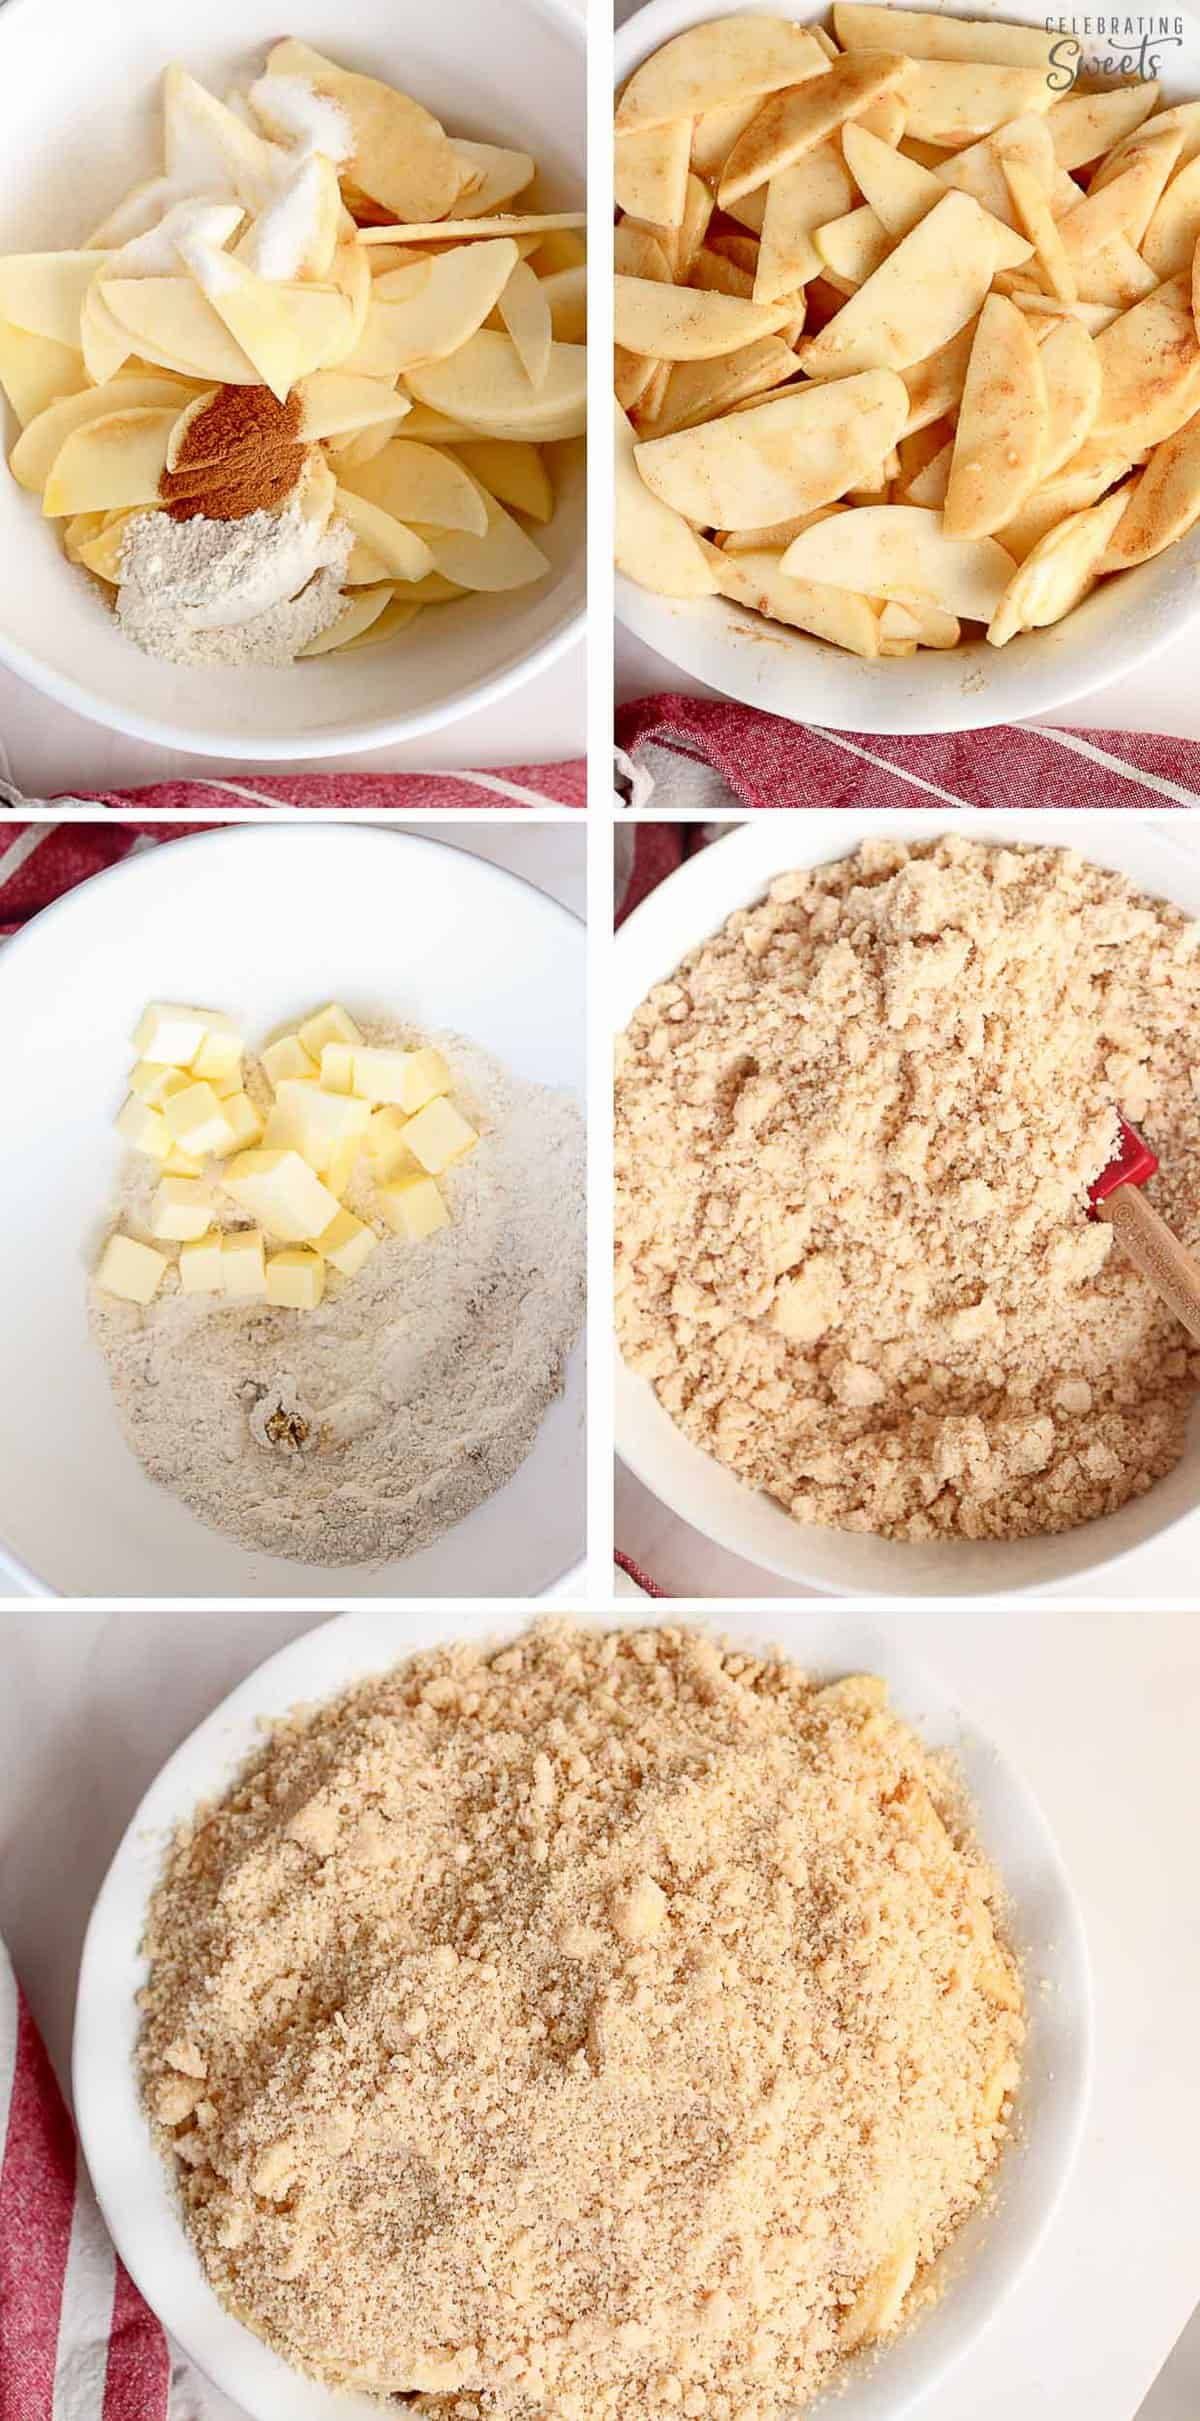 Collage how to make apple crumble: apples in a bowl, crumb topping in a bowl, apple crumble assembled in baking dish.